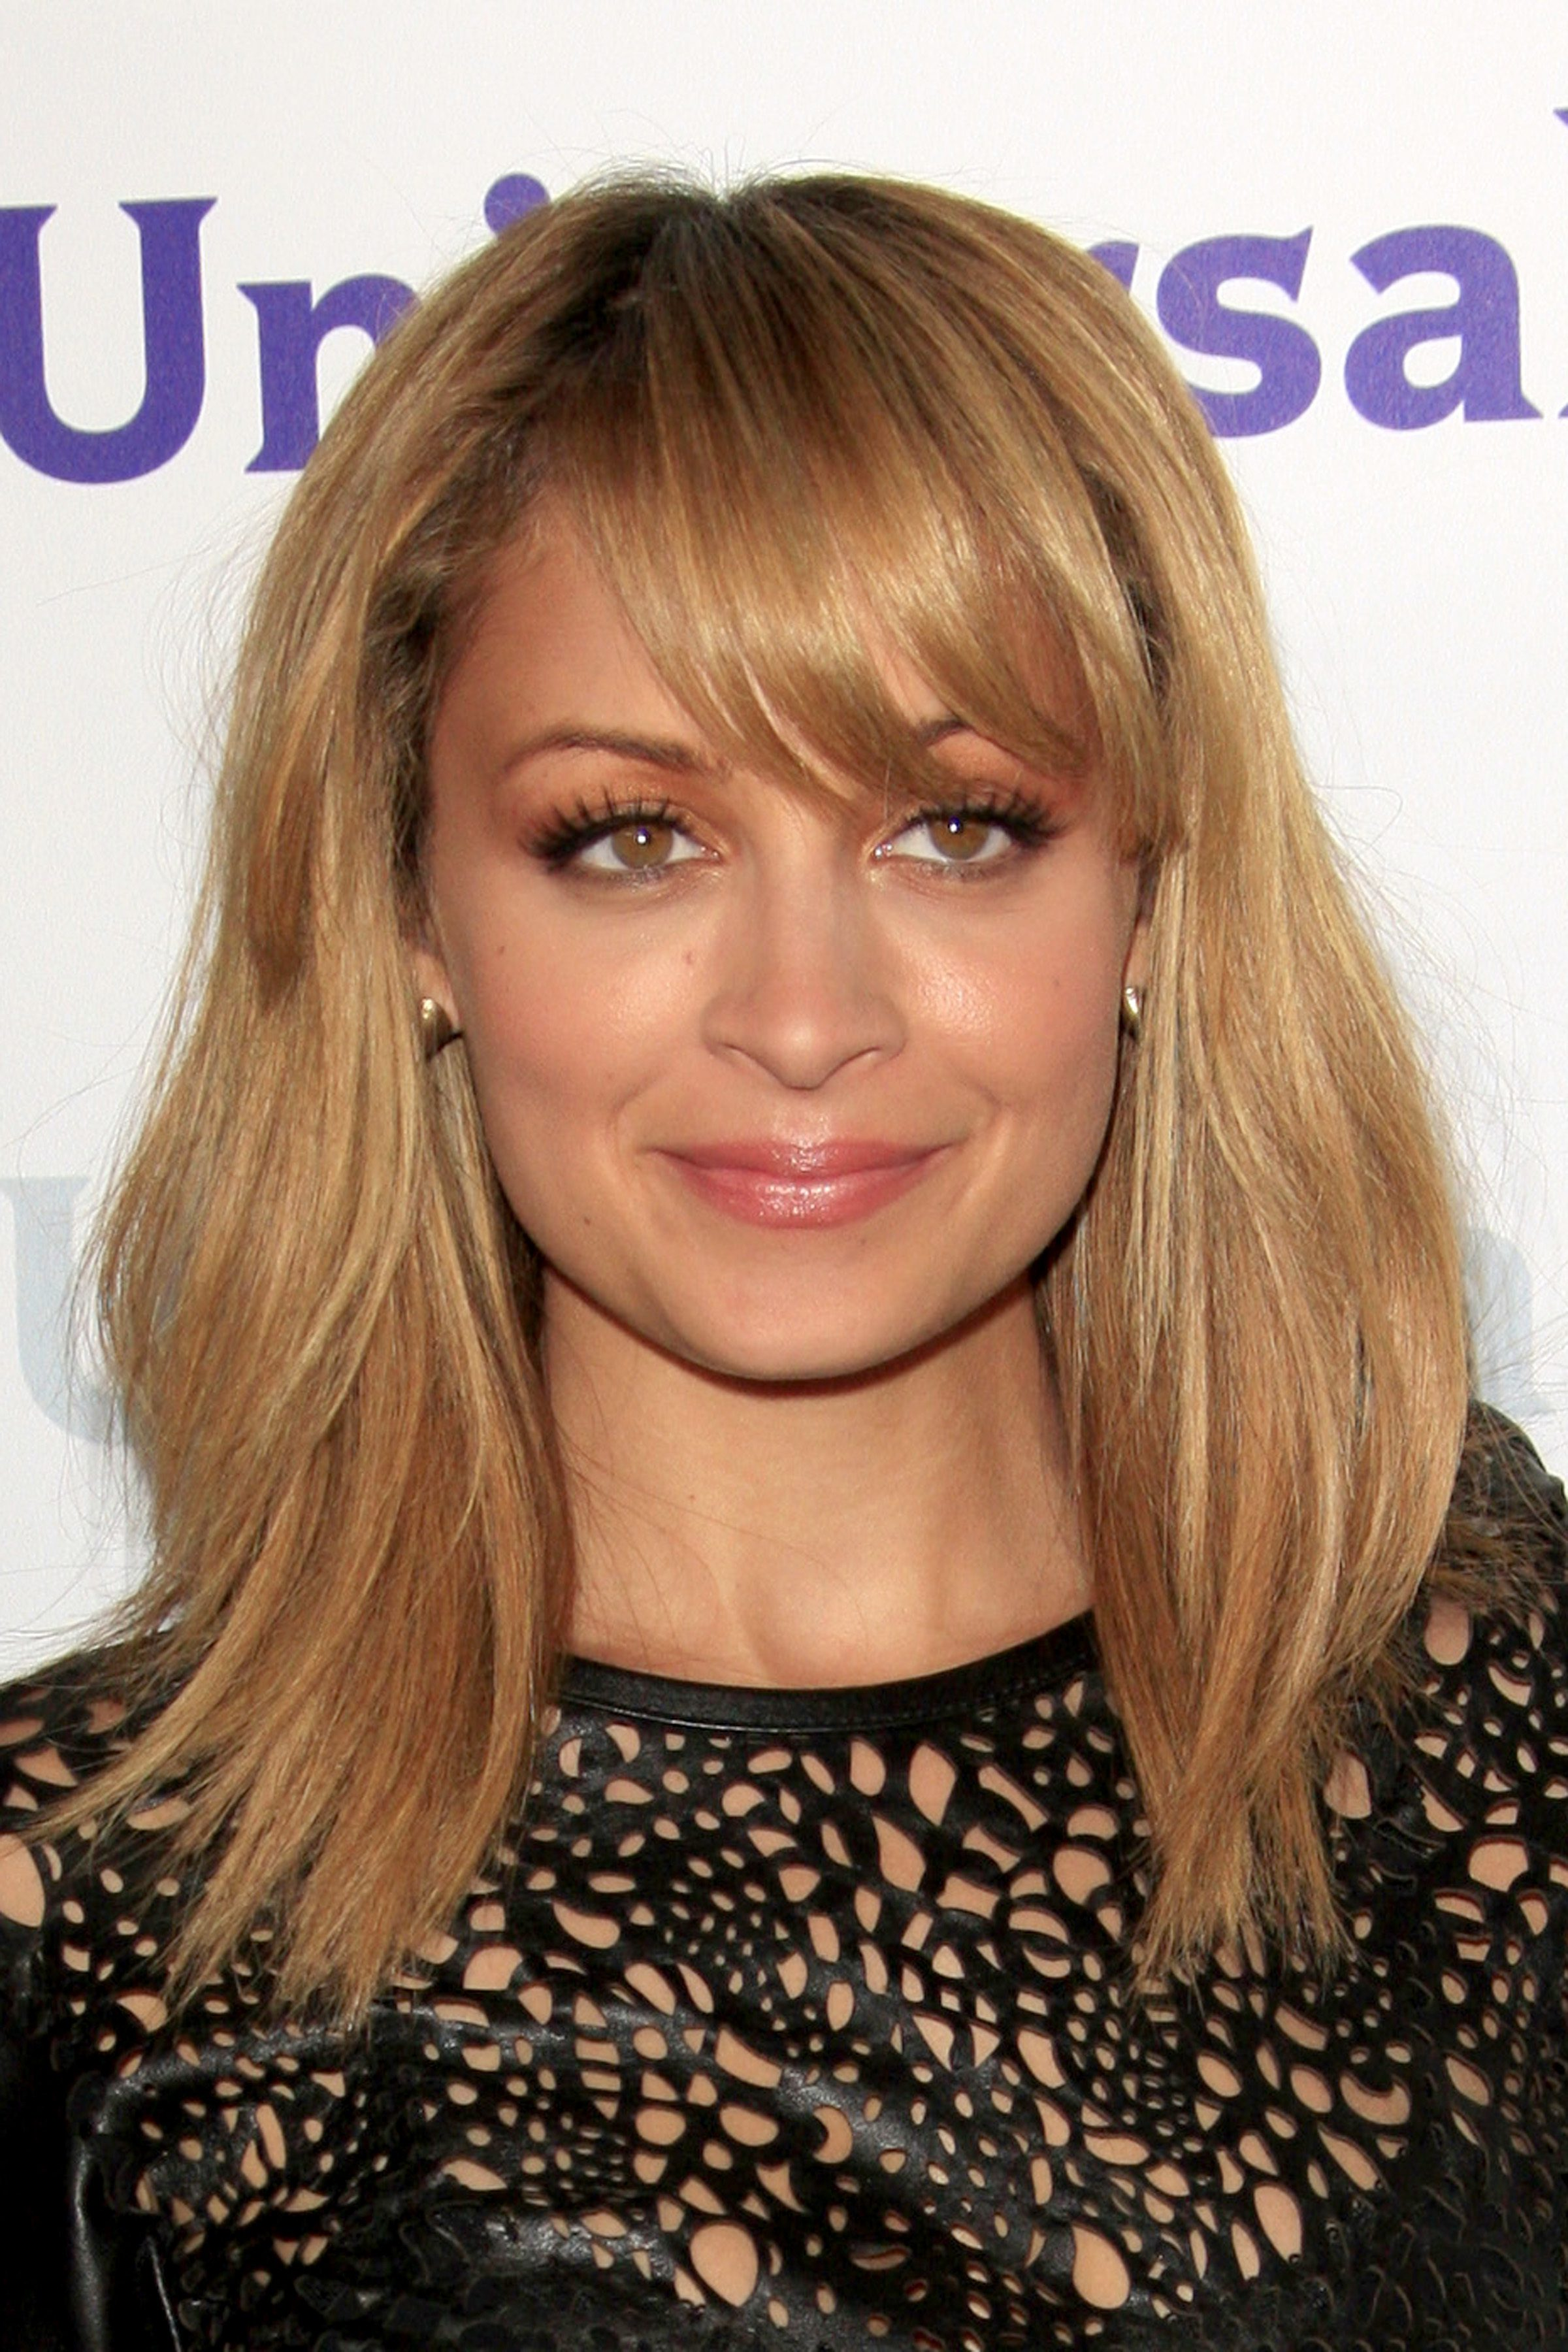 Nicole Richie's Layered Cut With Side Bangs